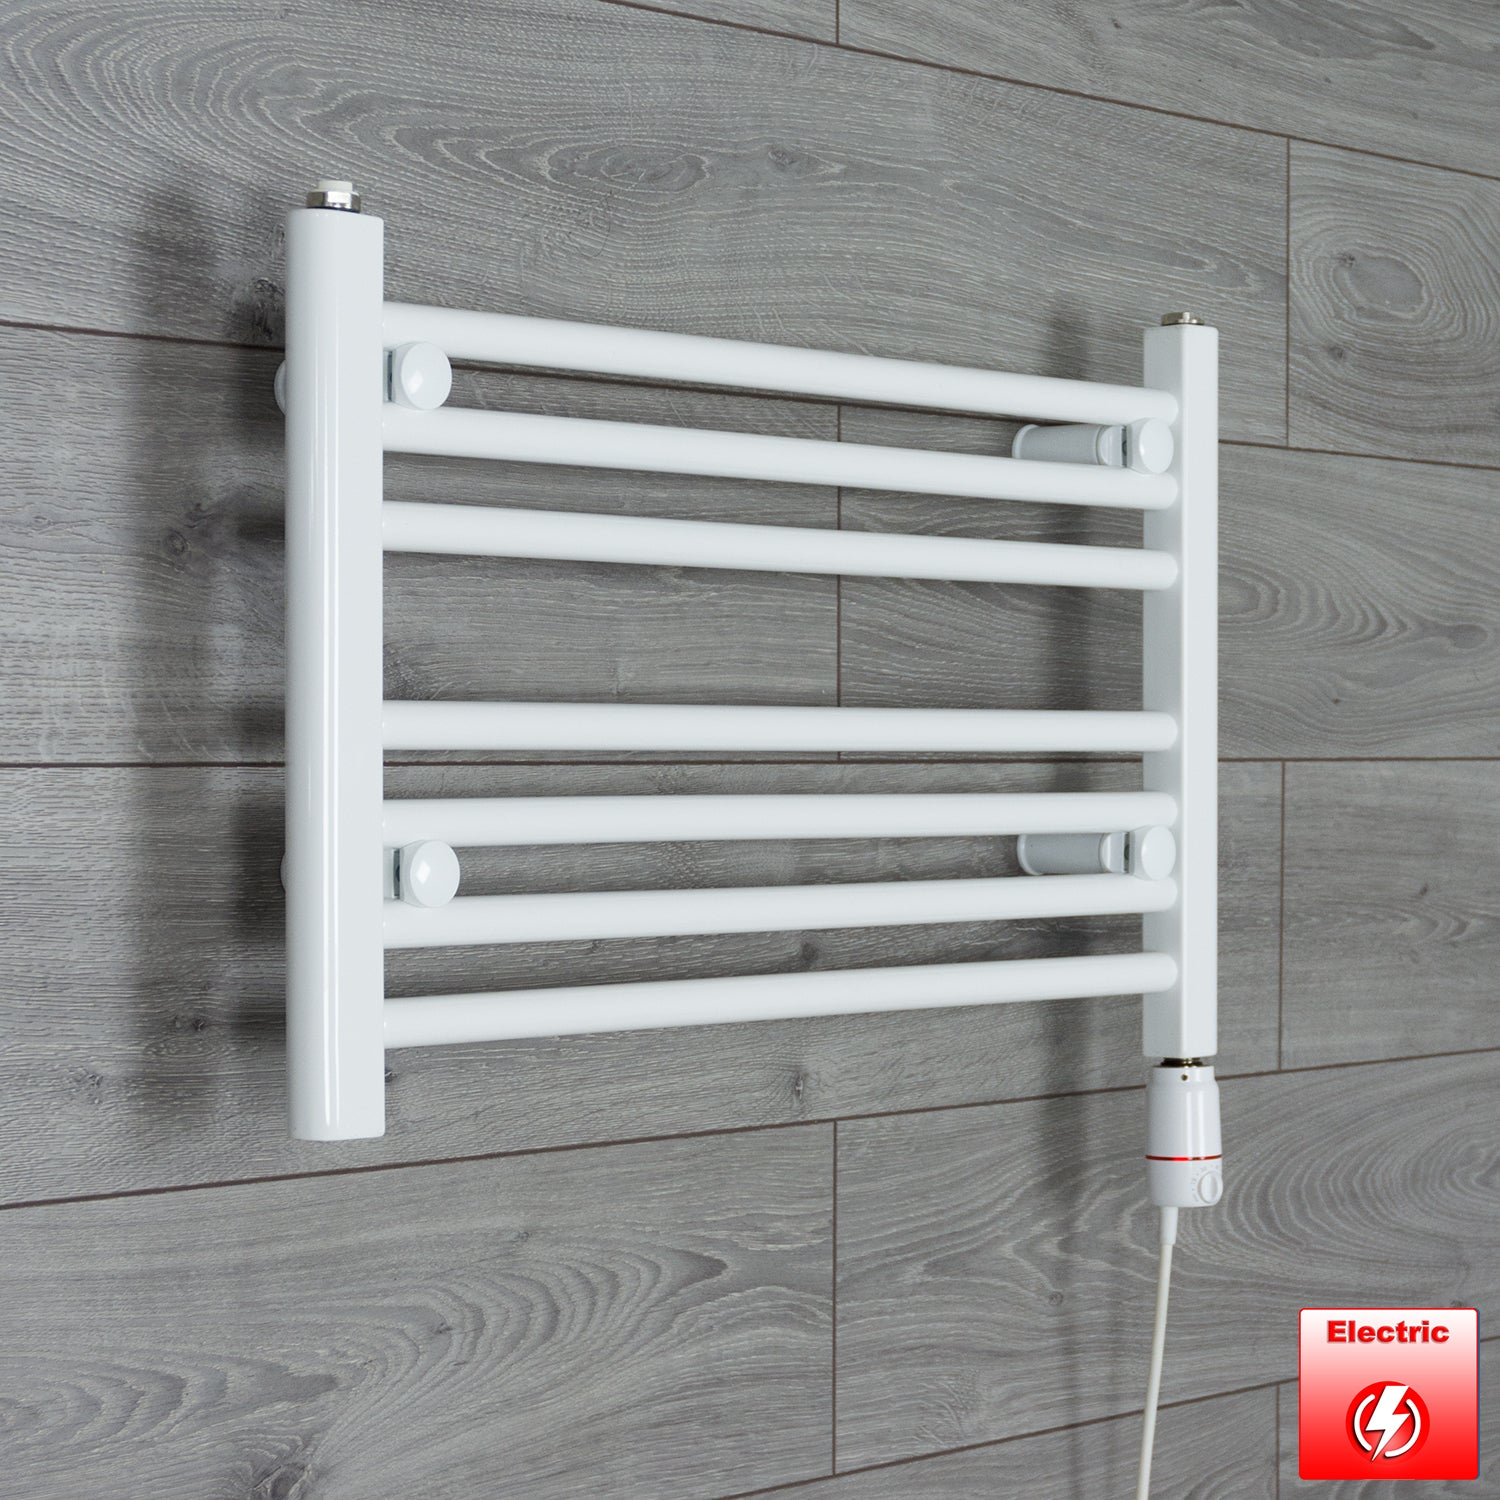 650mm Wide 400mm High Flat WHITE Pre-Filled Electric Heated Towel Rail Radiator HTR,GT Thermostatic